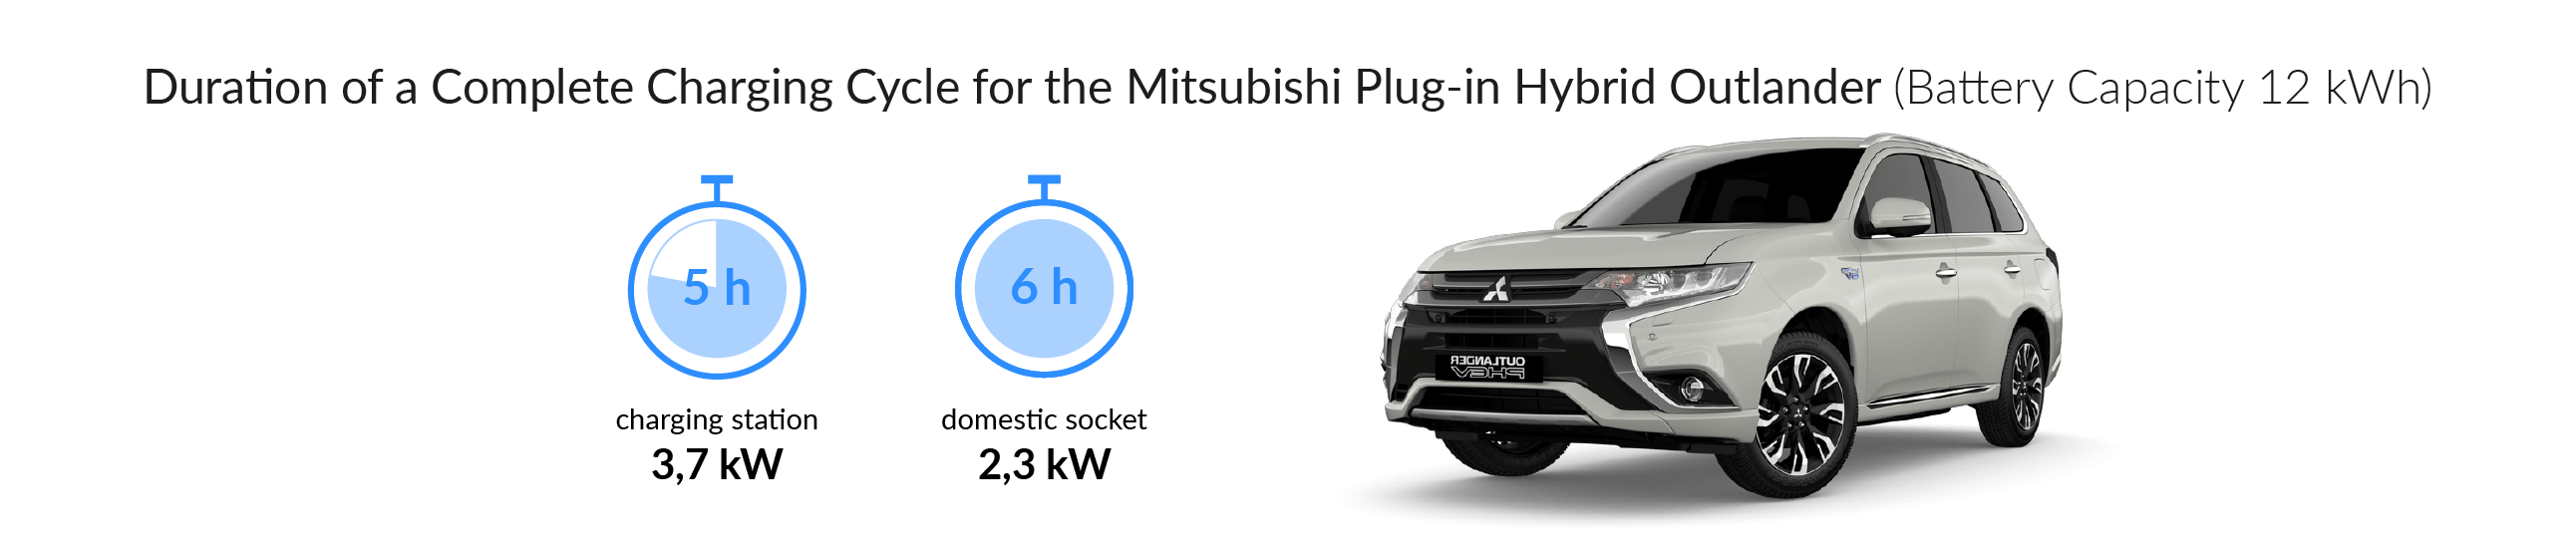 Charging time for your Mitsubishi Plug-In Hybrid Outlander